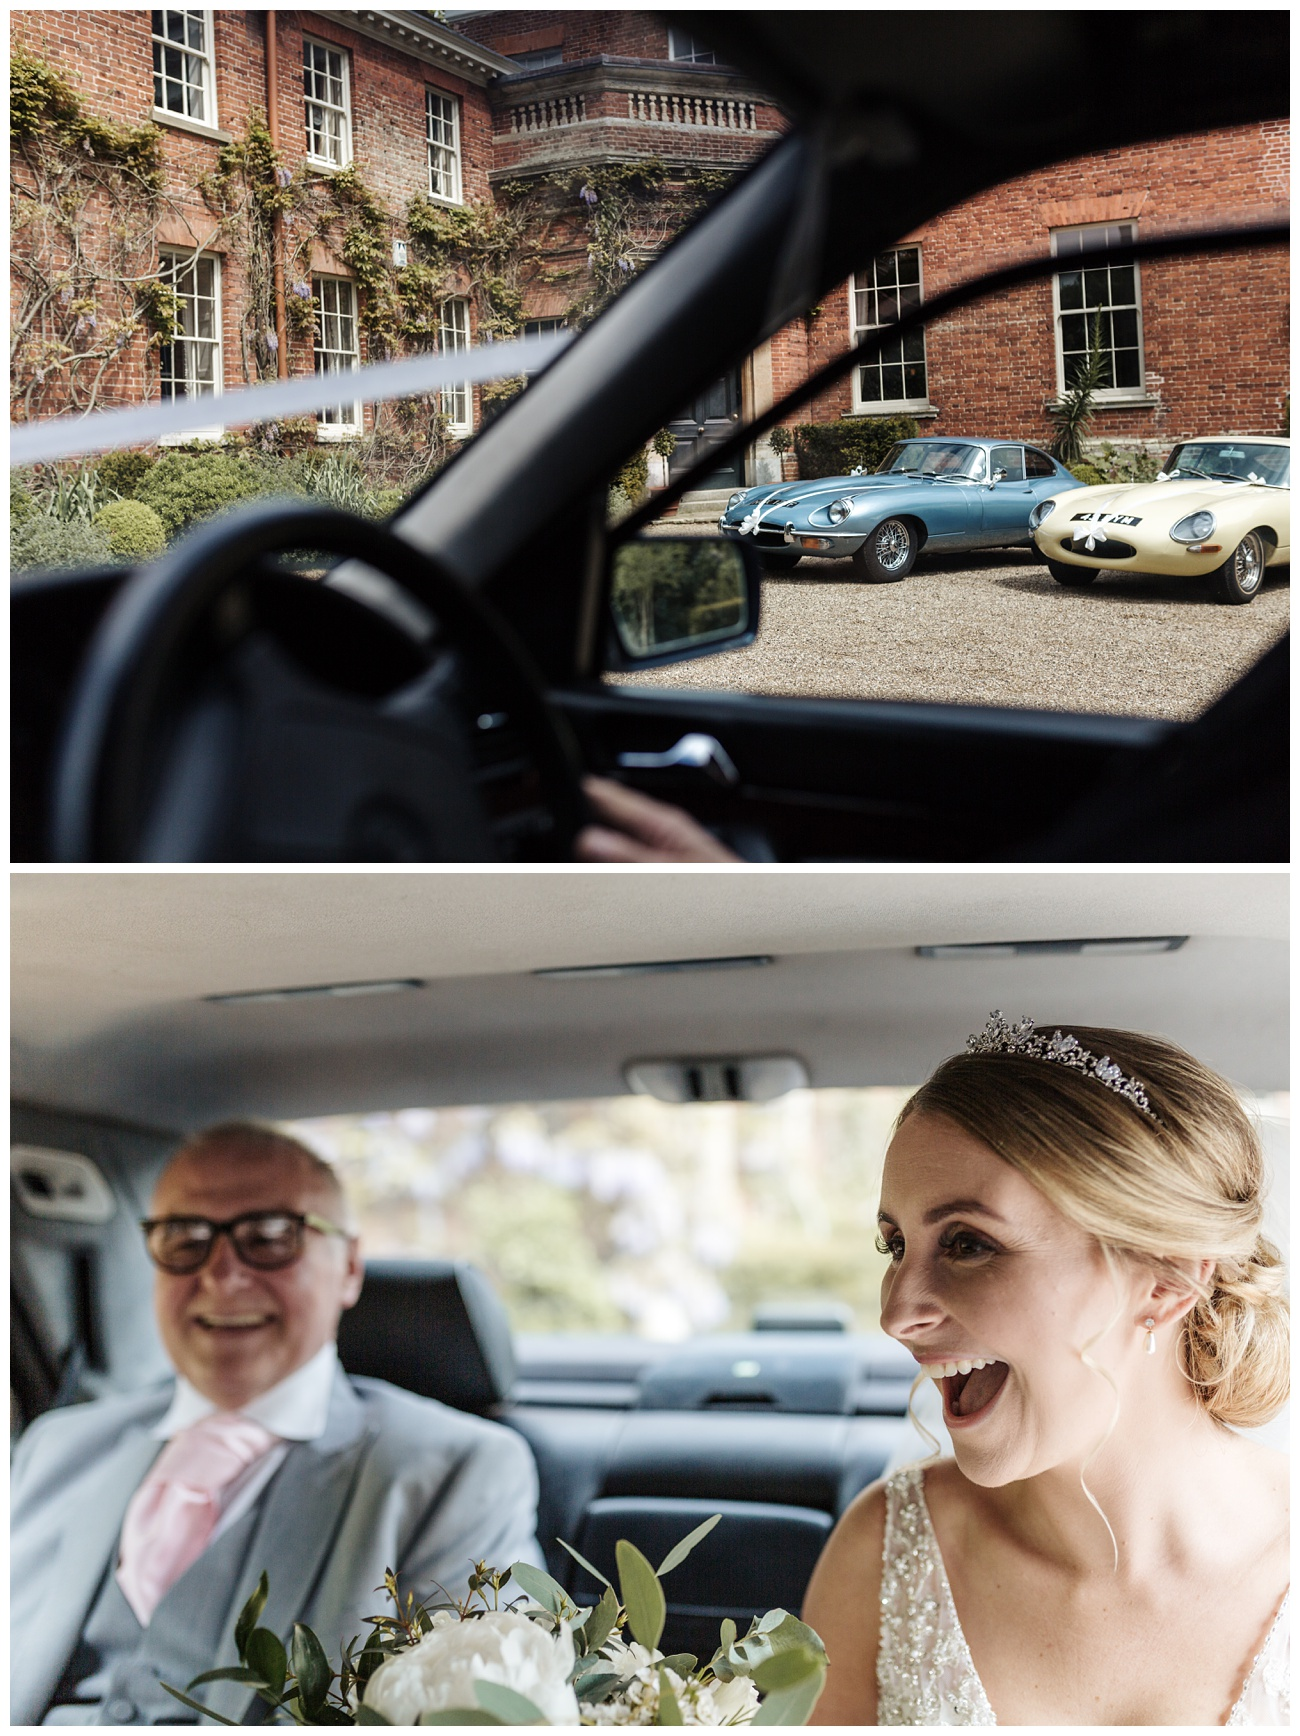 The bride and her father laugh in the wedding car on the way to the castle